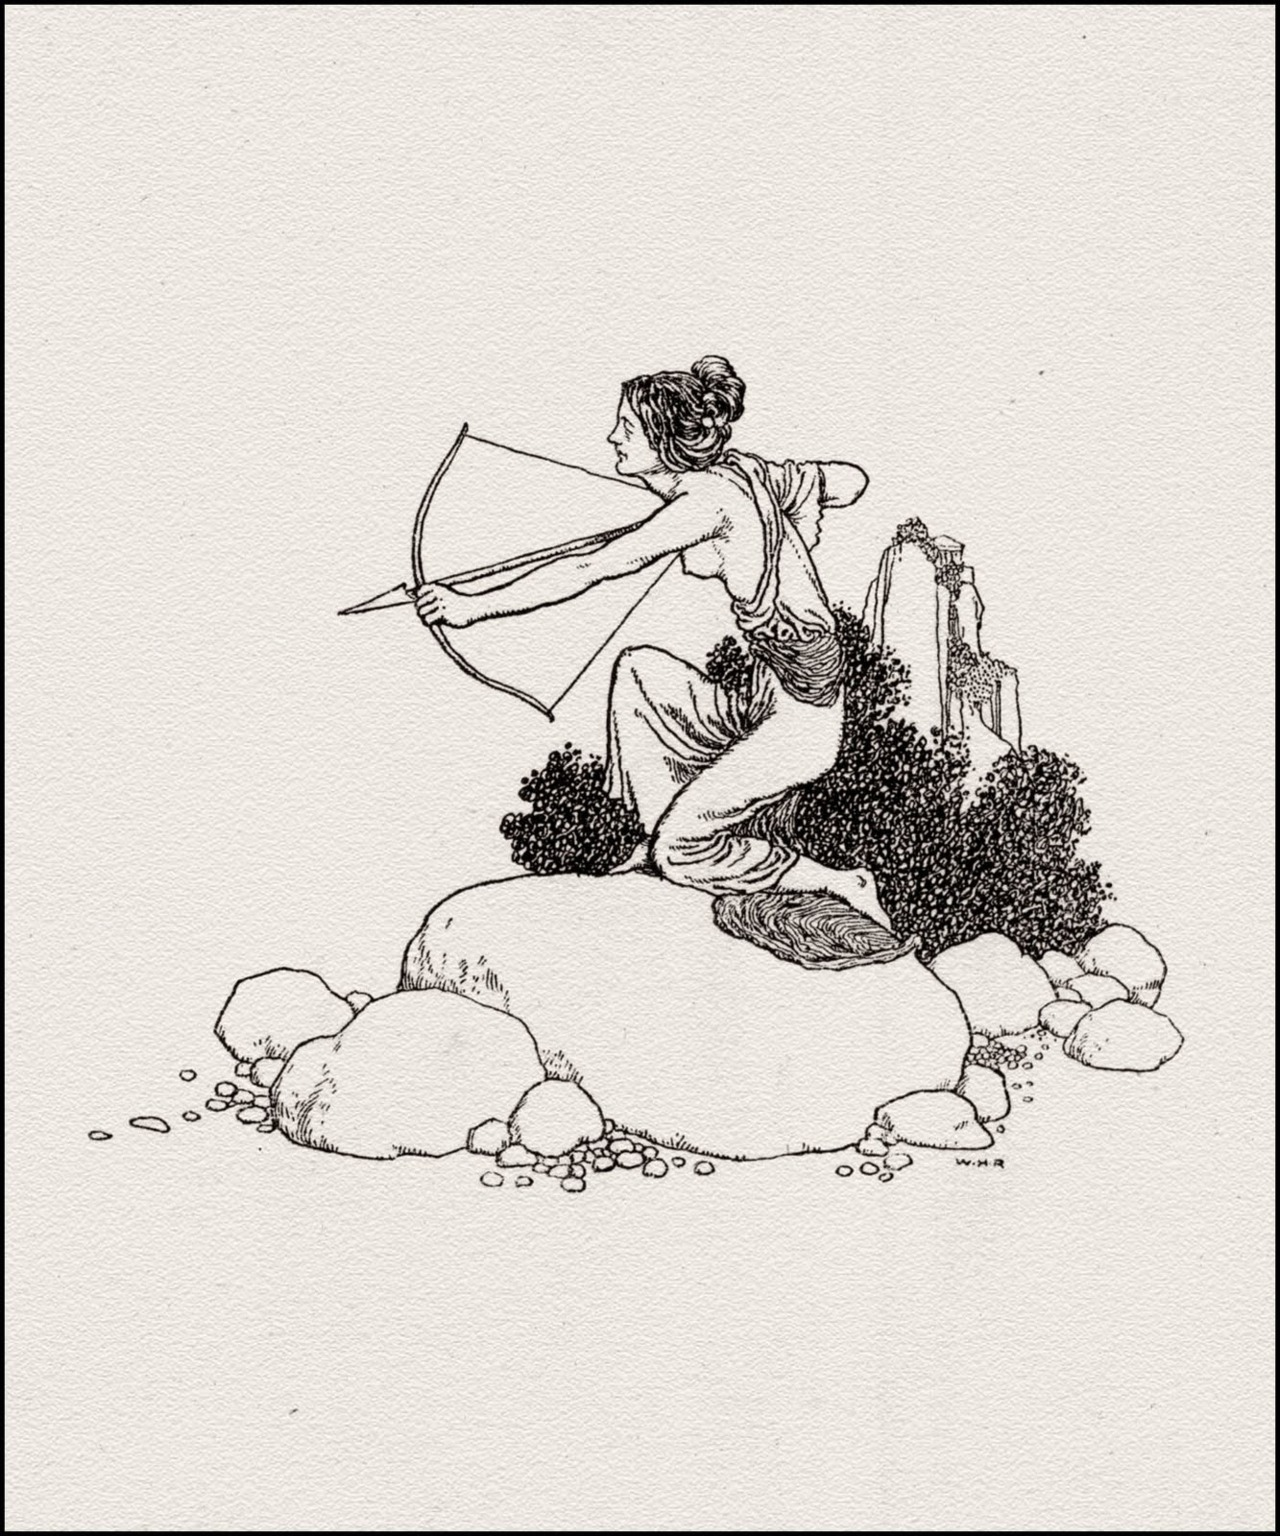 W. Heath Robinson illustration for A Midsummer Night's Dream